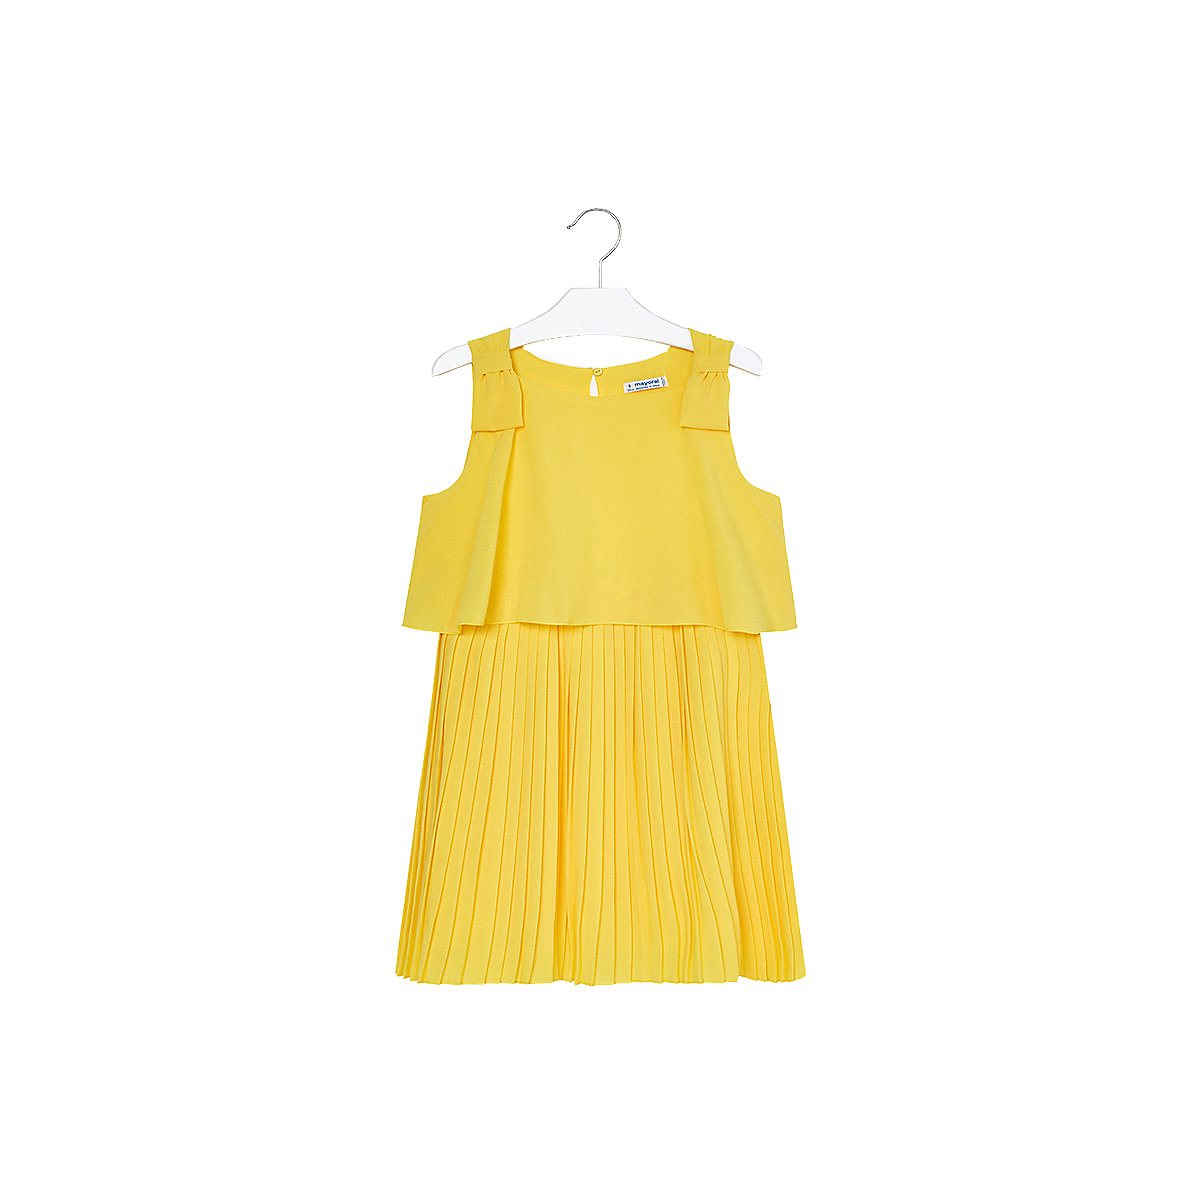 MAYORAL Dresses 10685971 Girl Children fitted pleated skirt Yellow Polyester Casual Solid Knee-Length Sleeveless Sleeve navy velvet mini pleated skirt